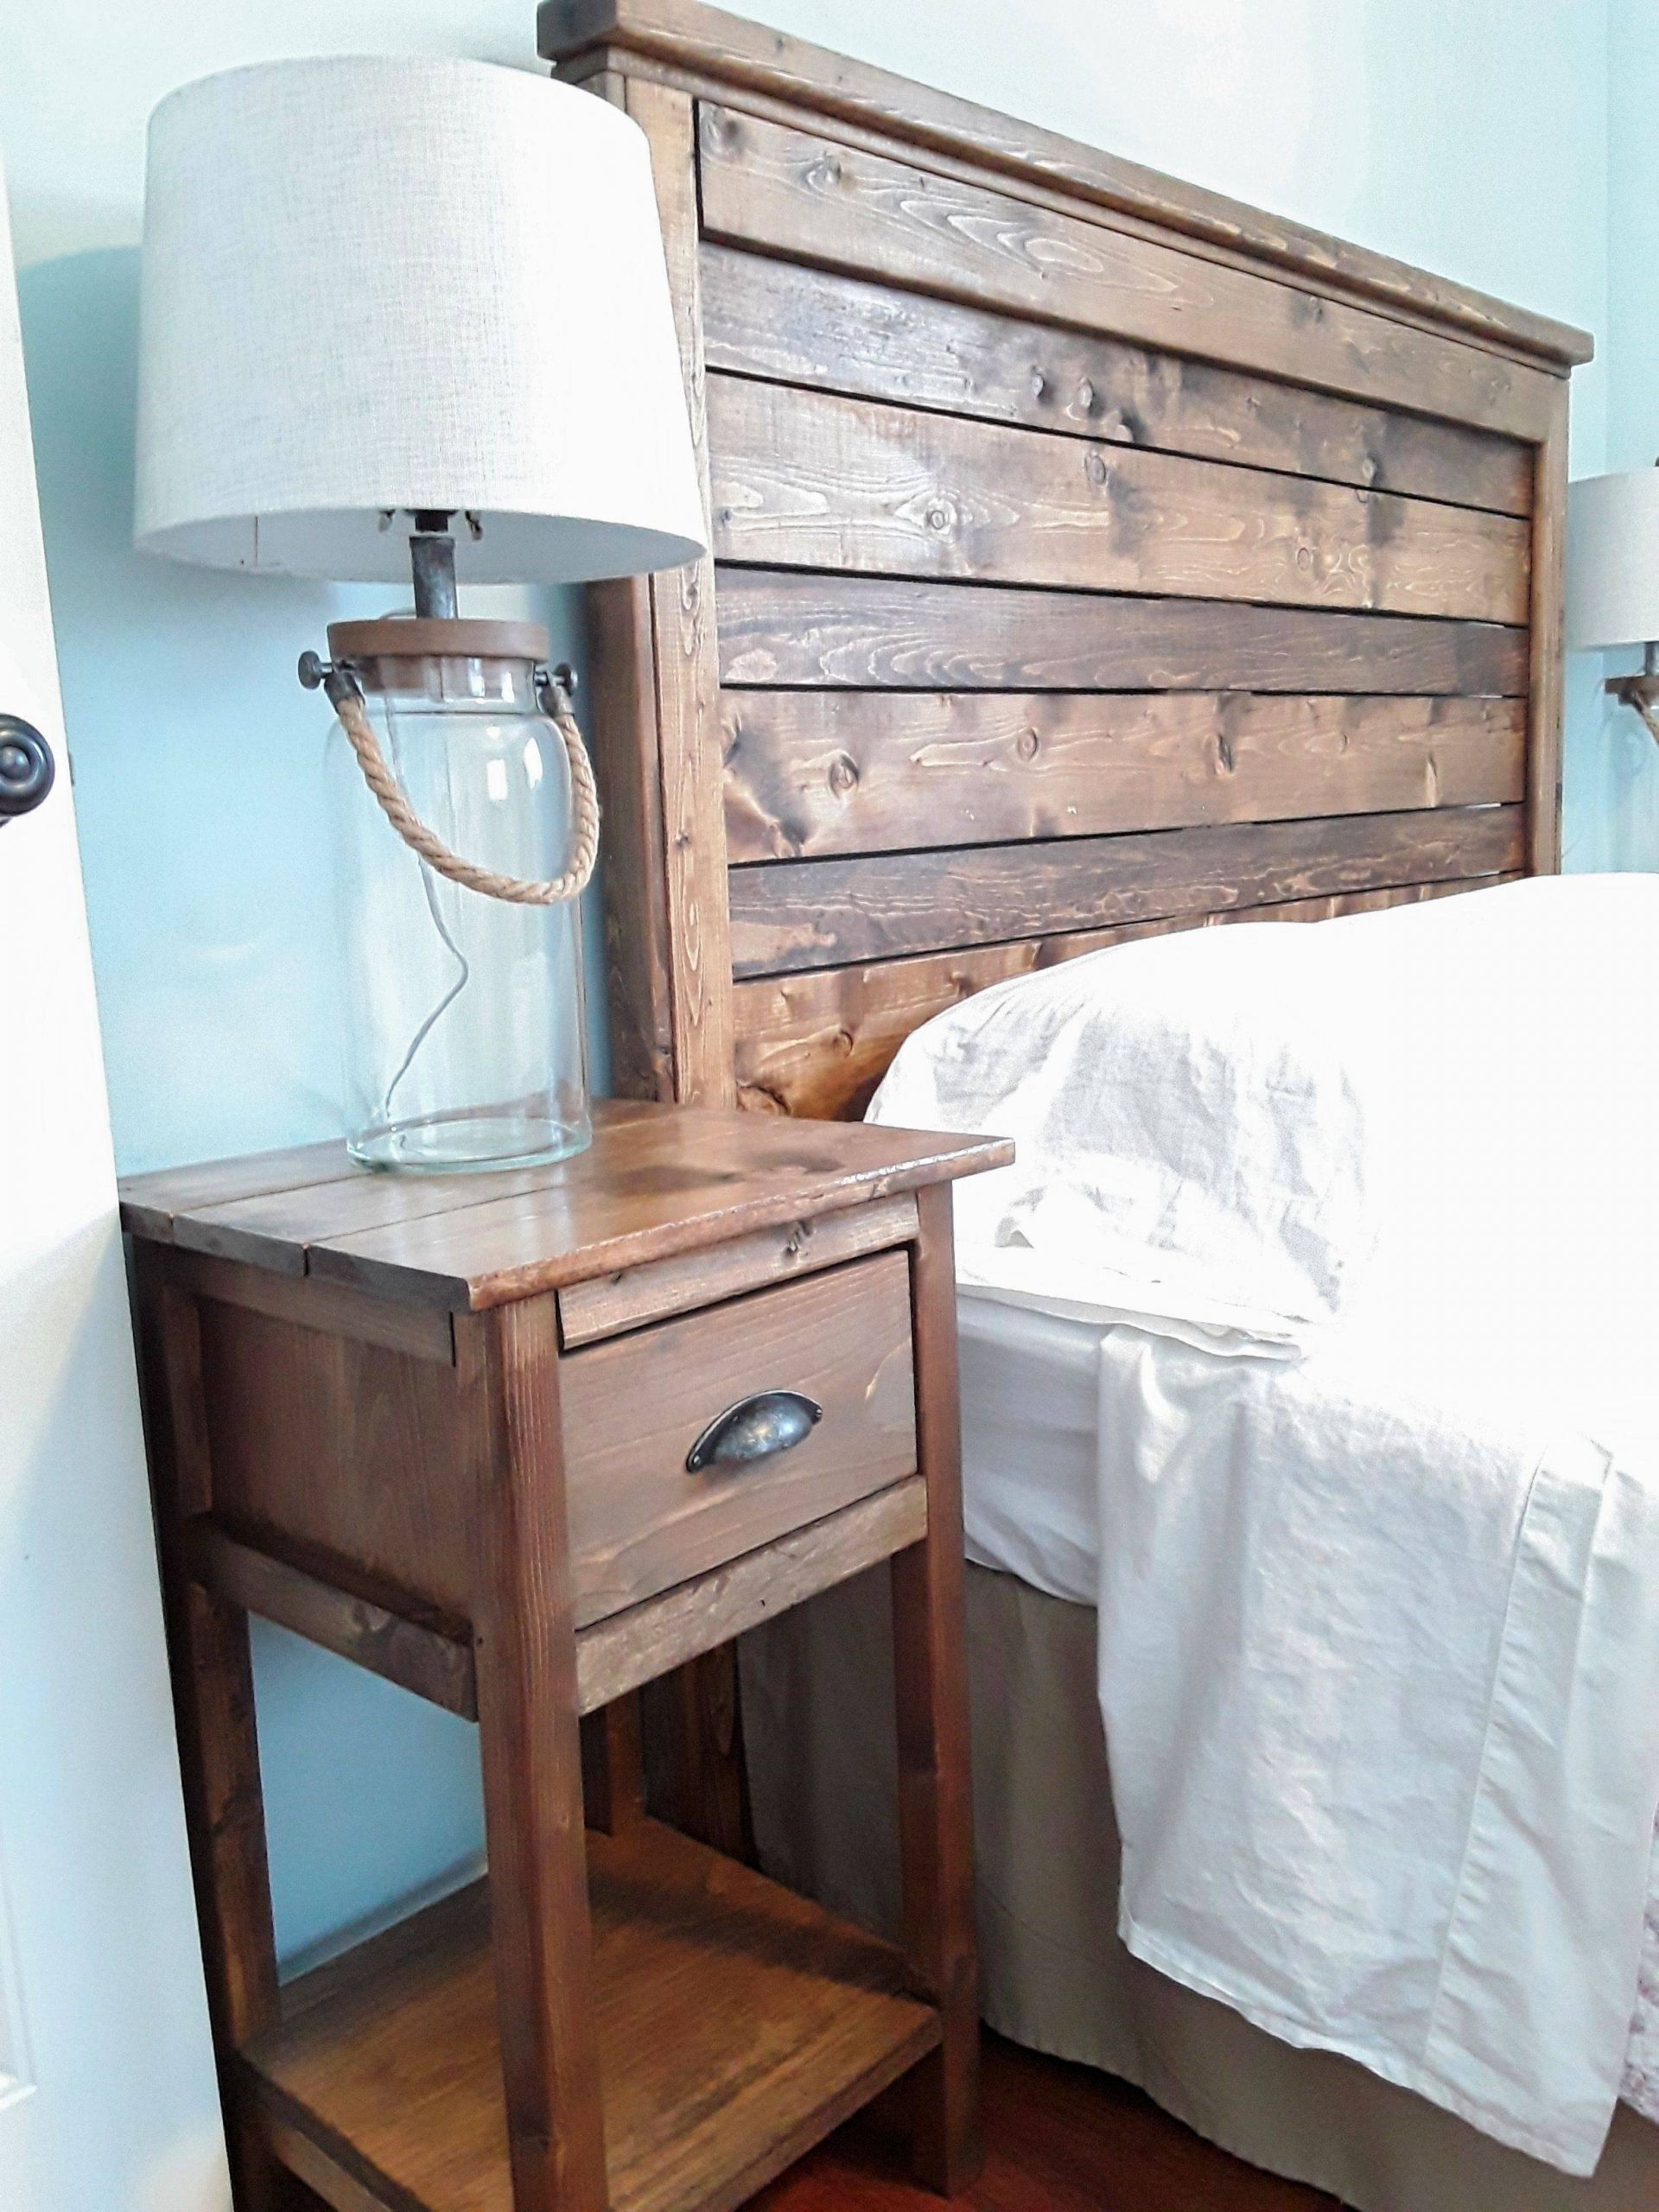 Bedside Table Ideas Beautiful Diy Rustic Wood Headboard and Nightstand